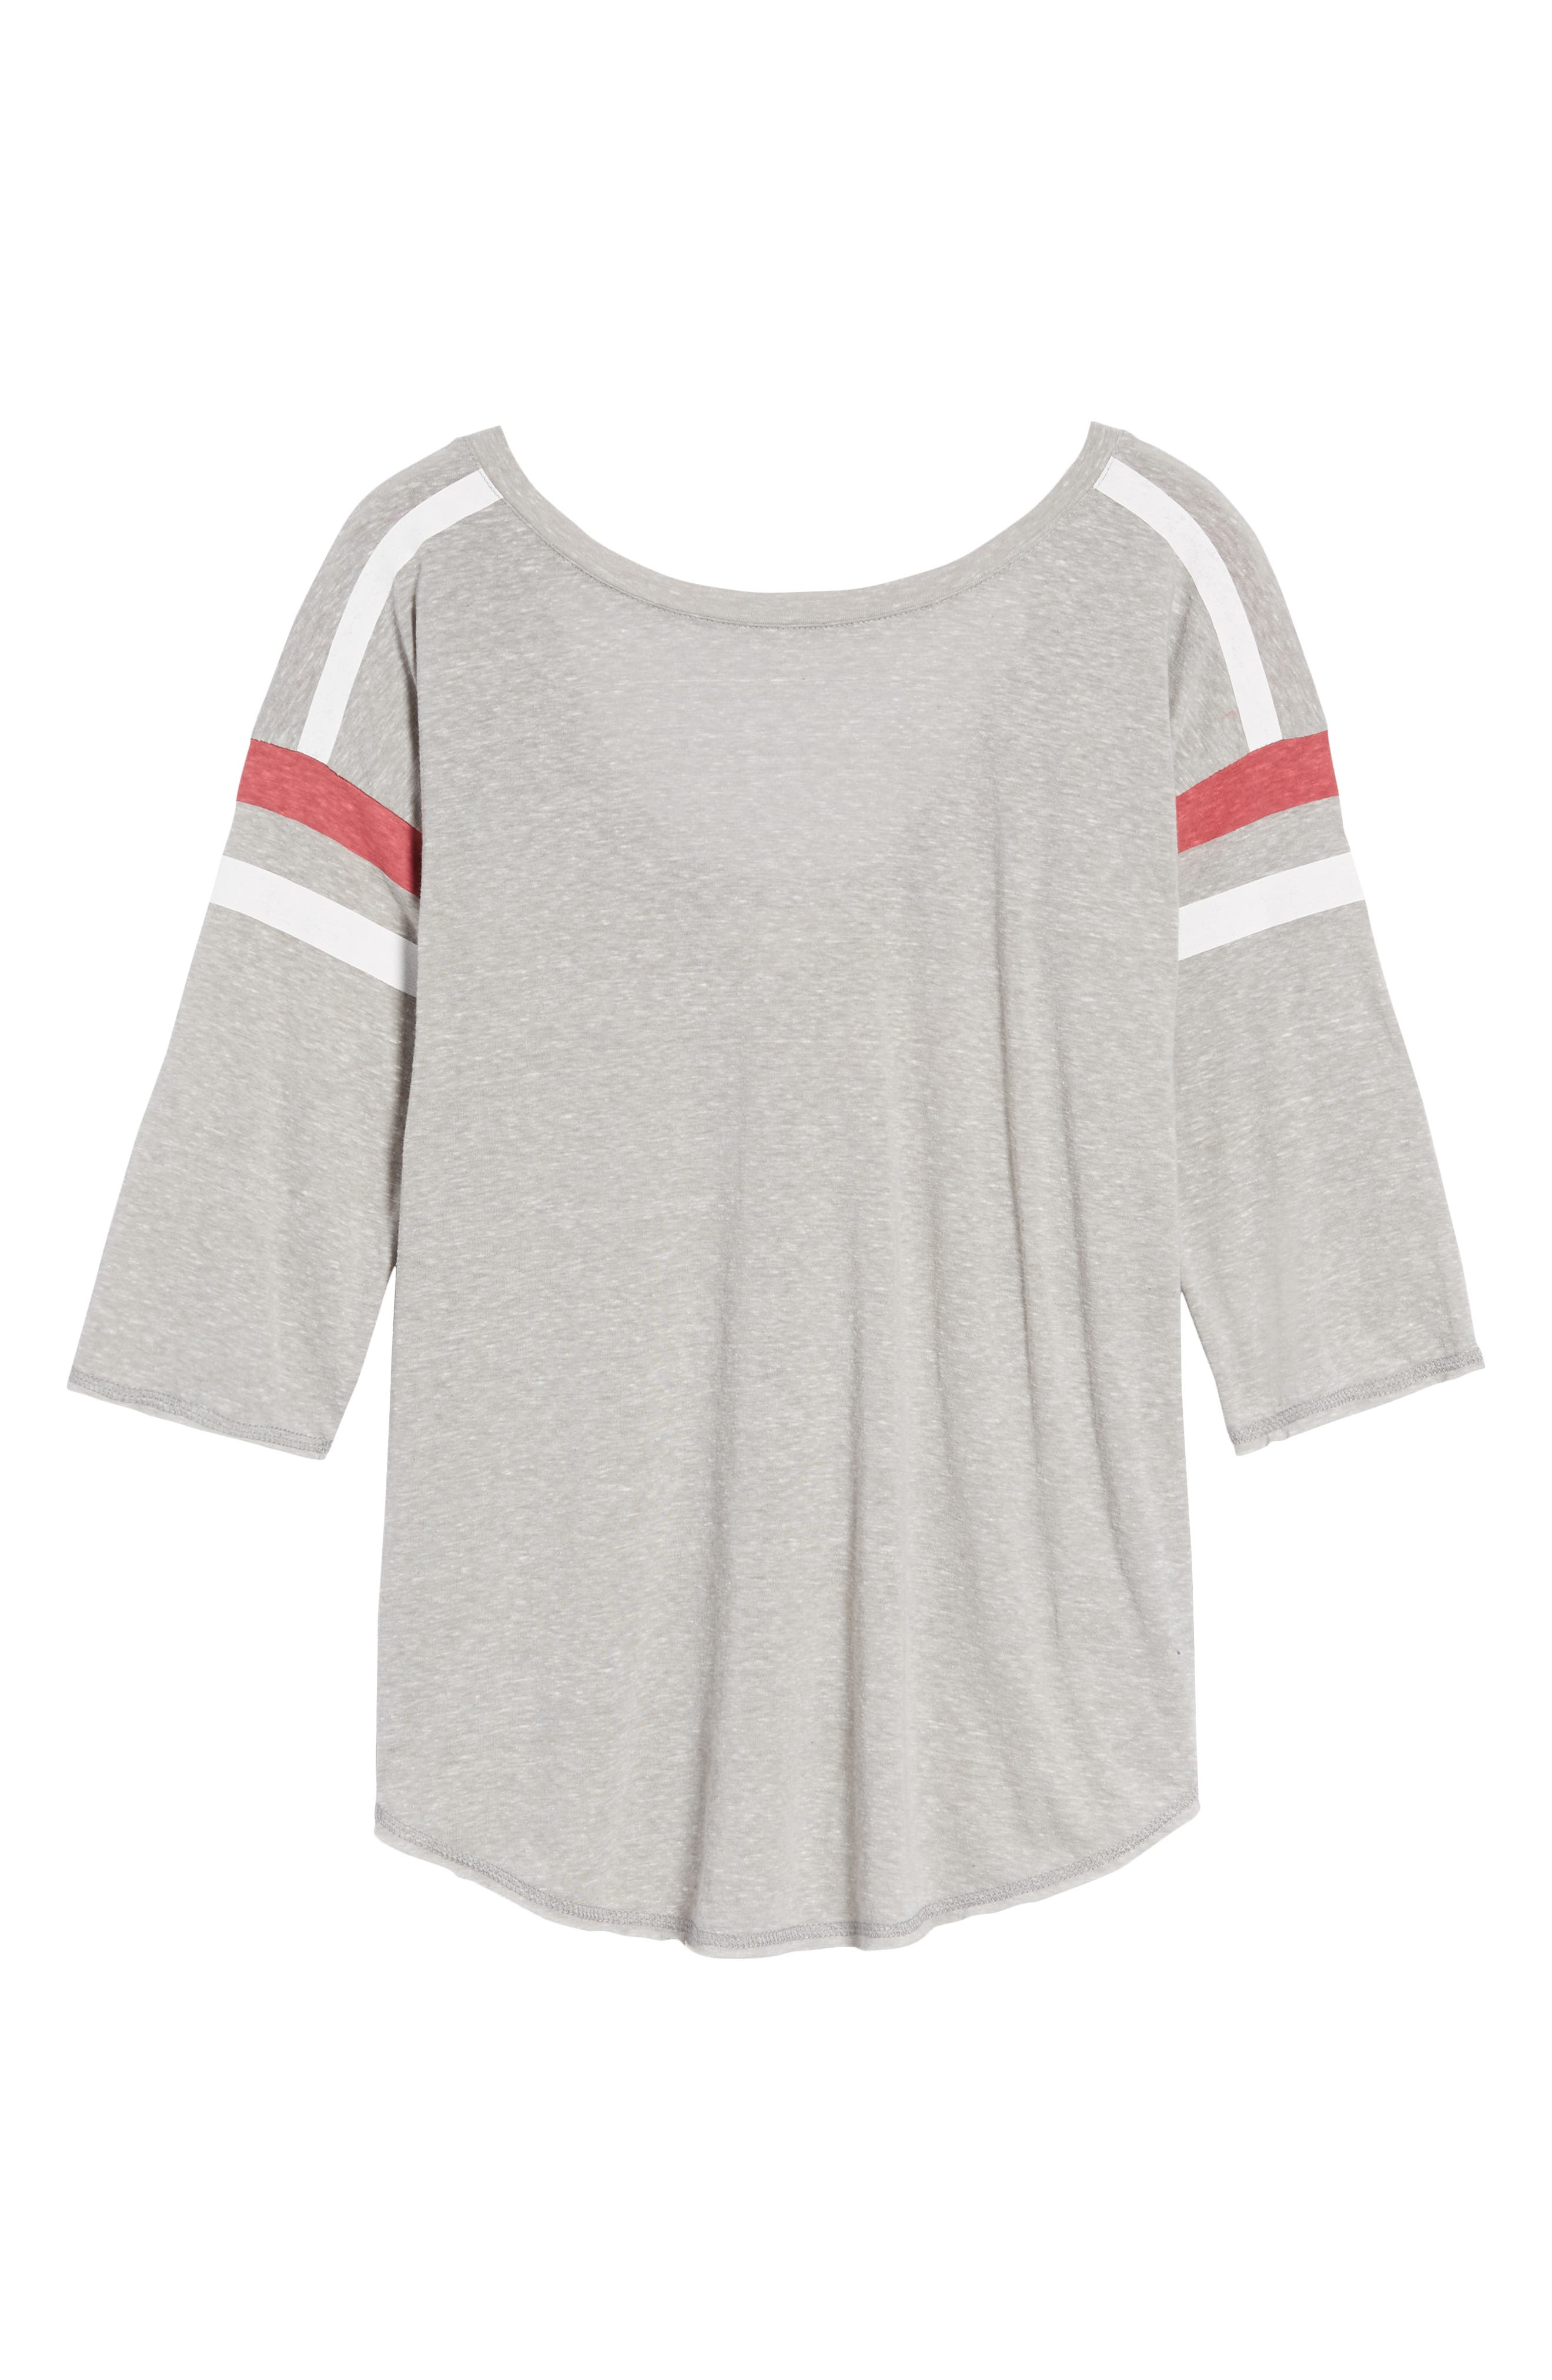 Sporty Tee,                             Alternate thumbnail 6, color,                             050